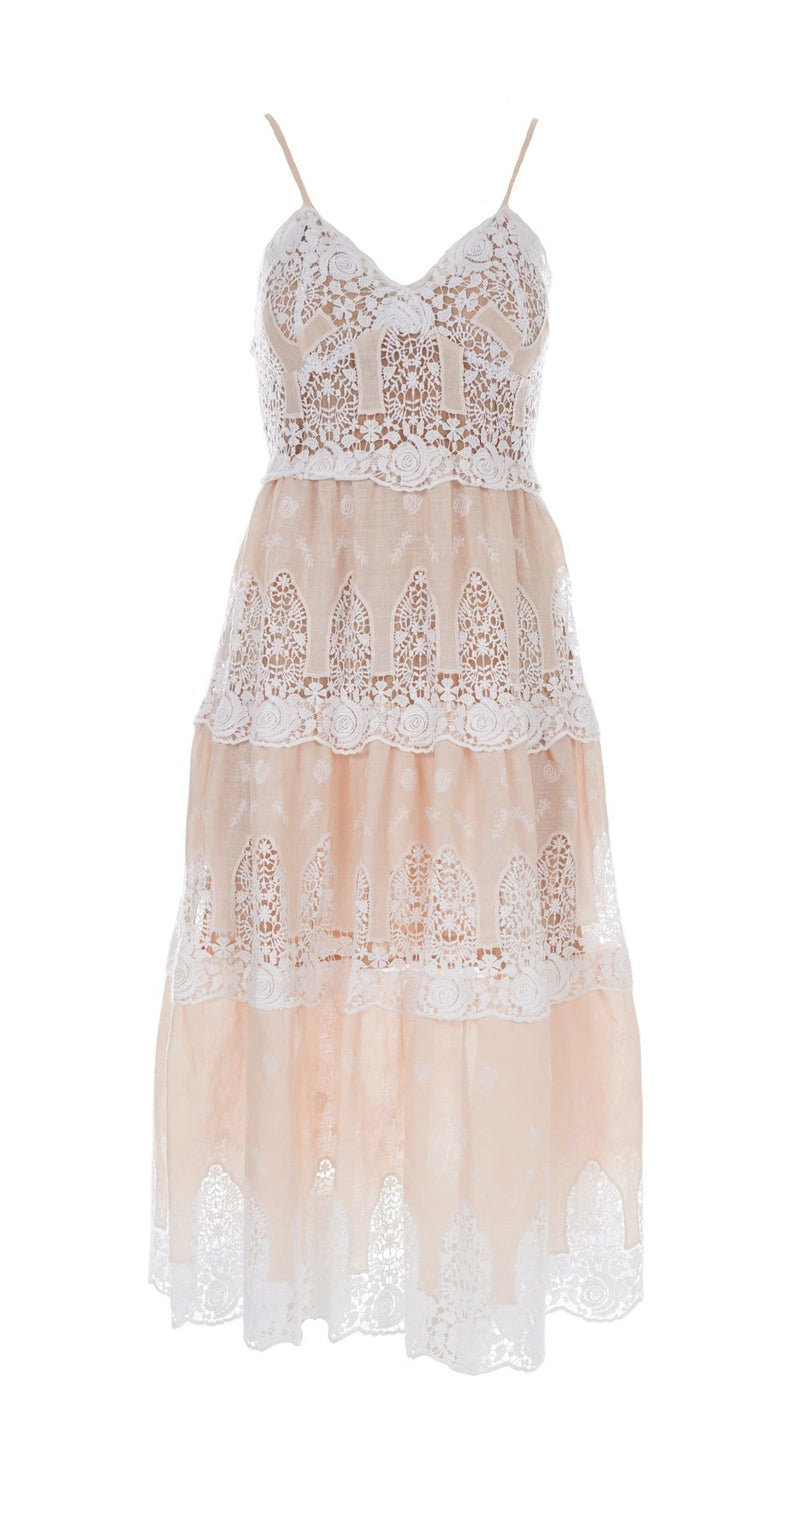 Miguelina - Lotte Honey Glow Crochet-Trimmed Midi Dress